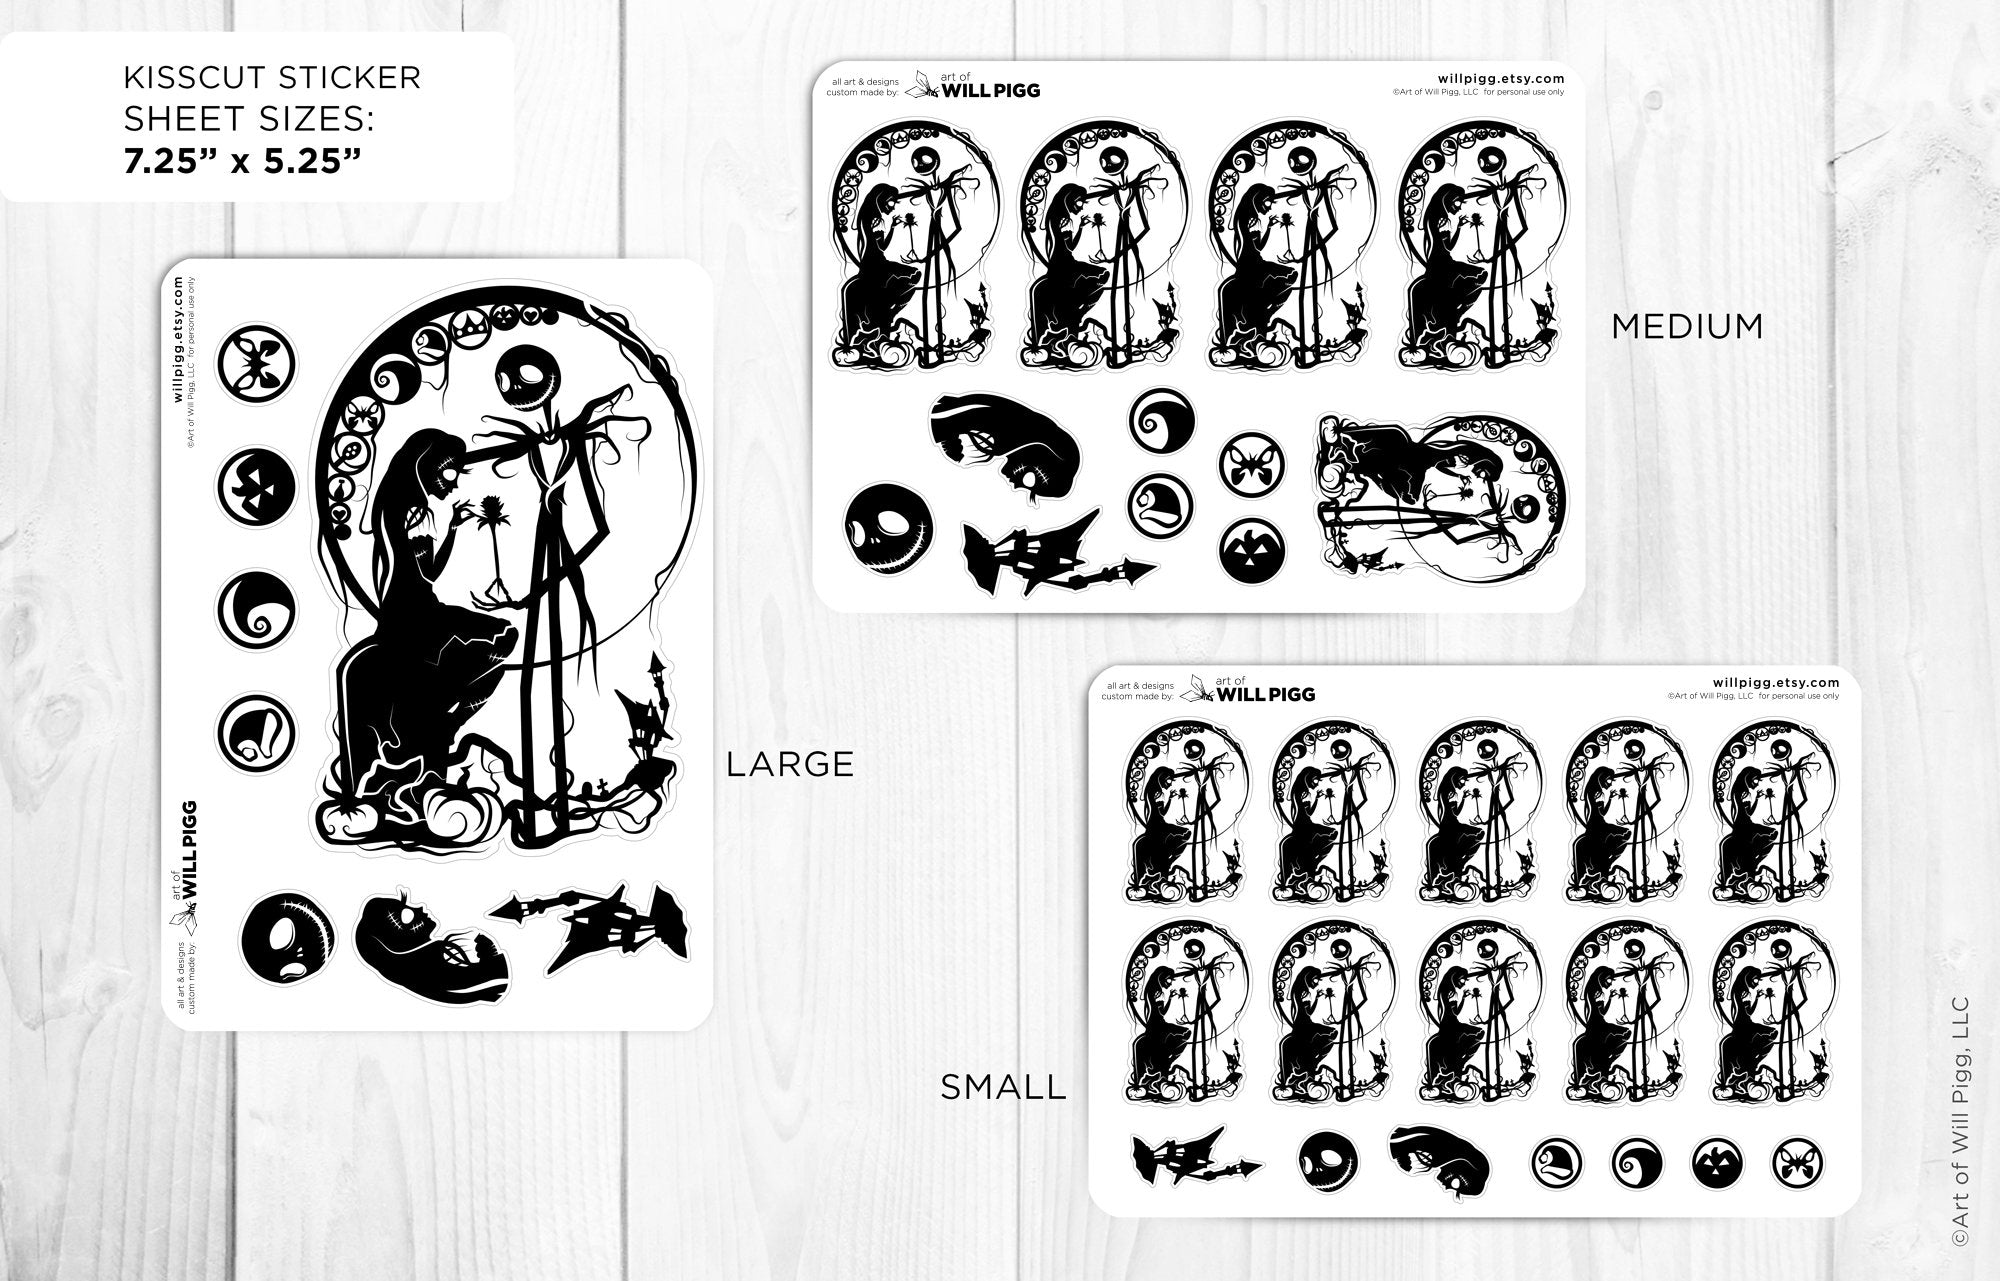 Nightmare Before Christmas Jack and Sally Kiss Cut Stickers Planner Journal Party Supplies Event Supplies Wedding Birthday Geek Will Pigg